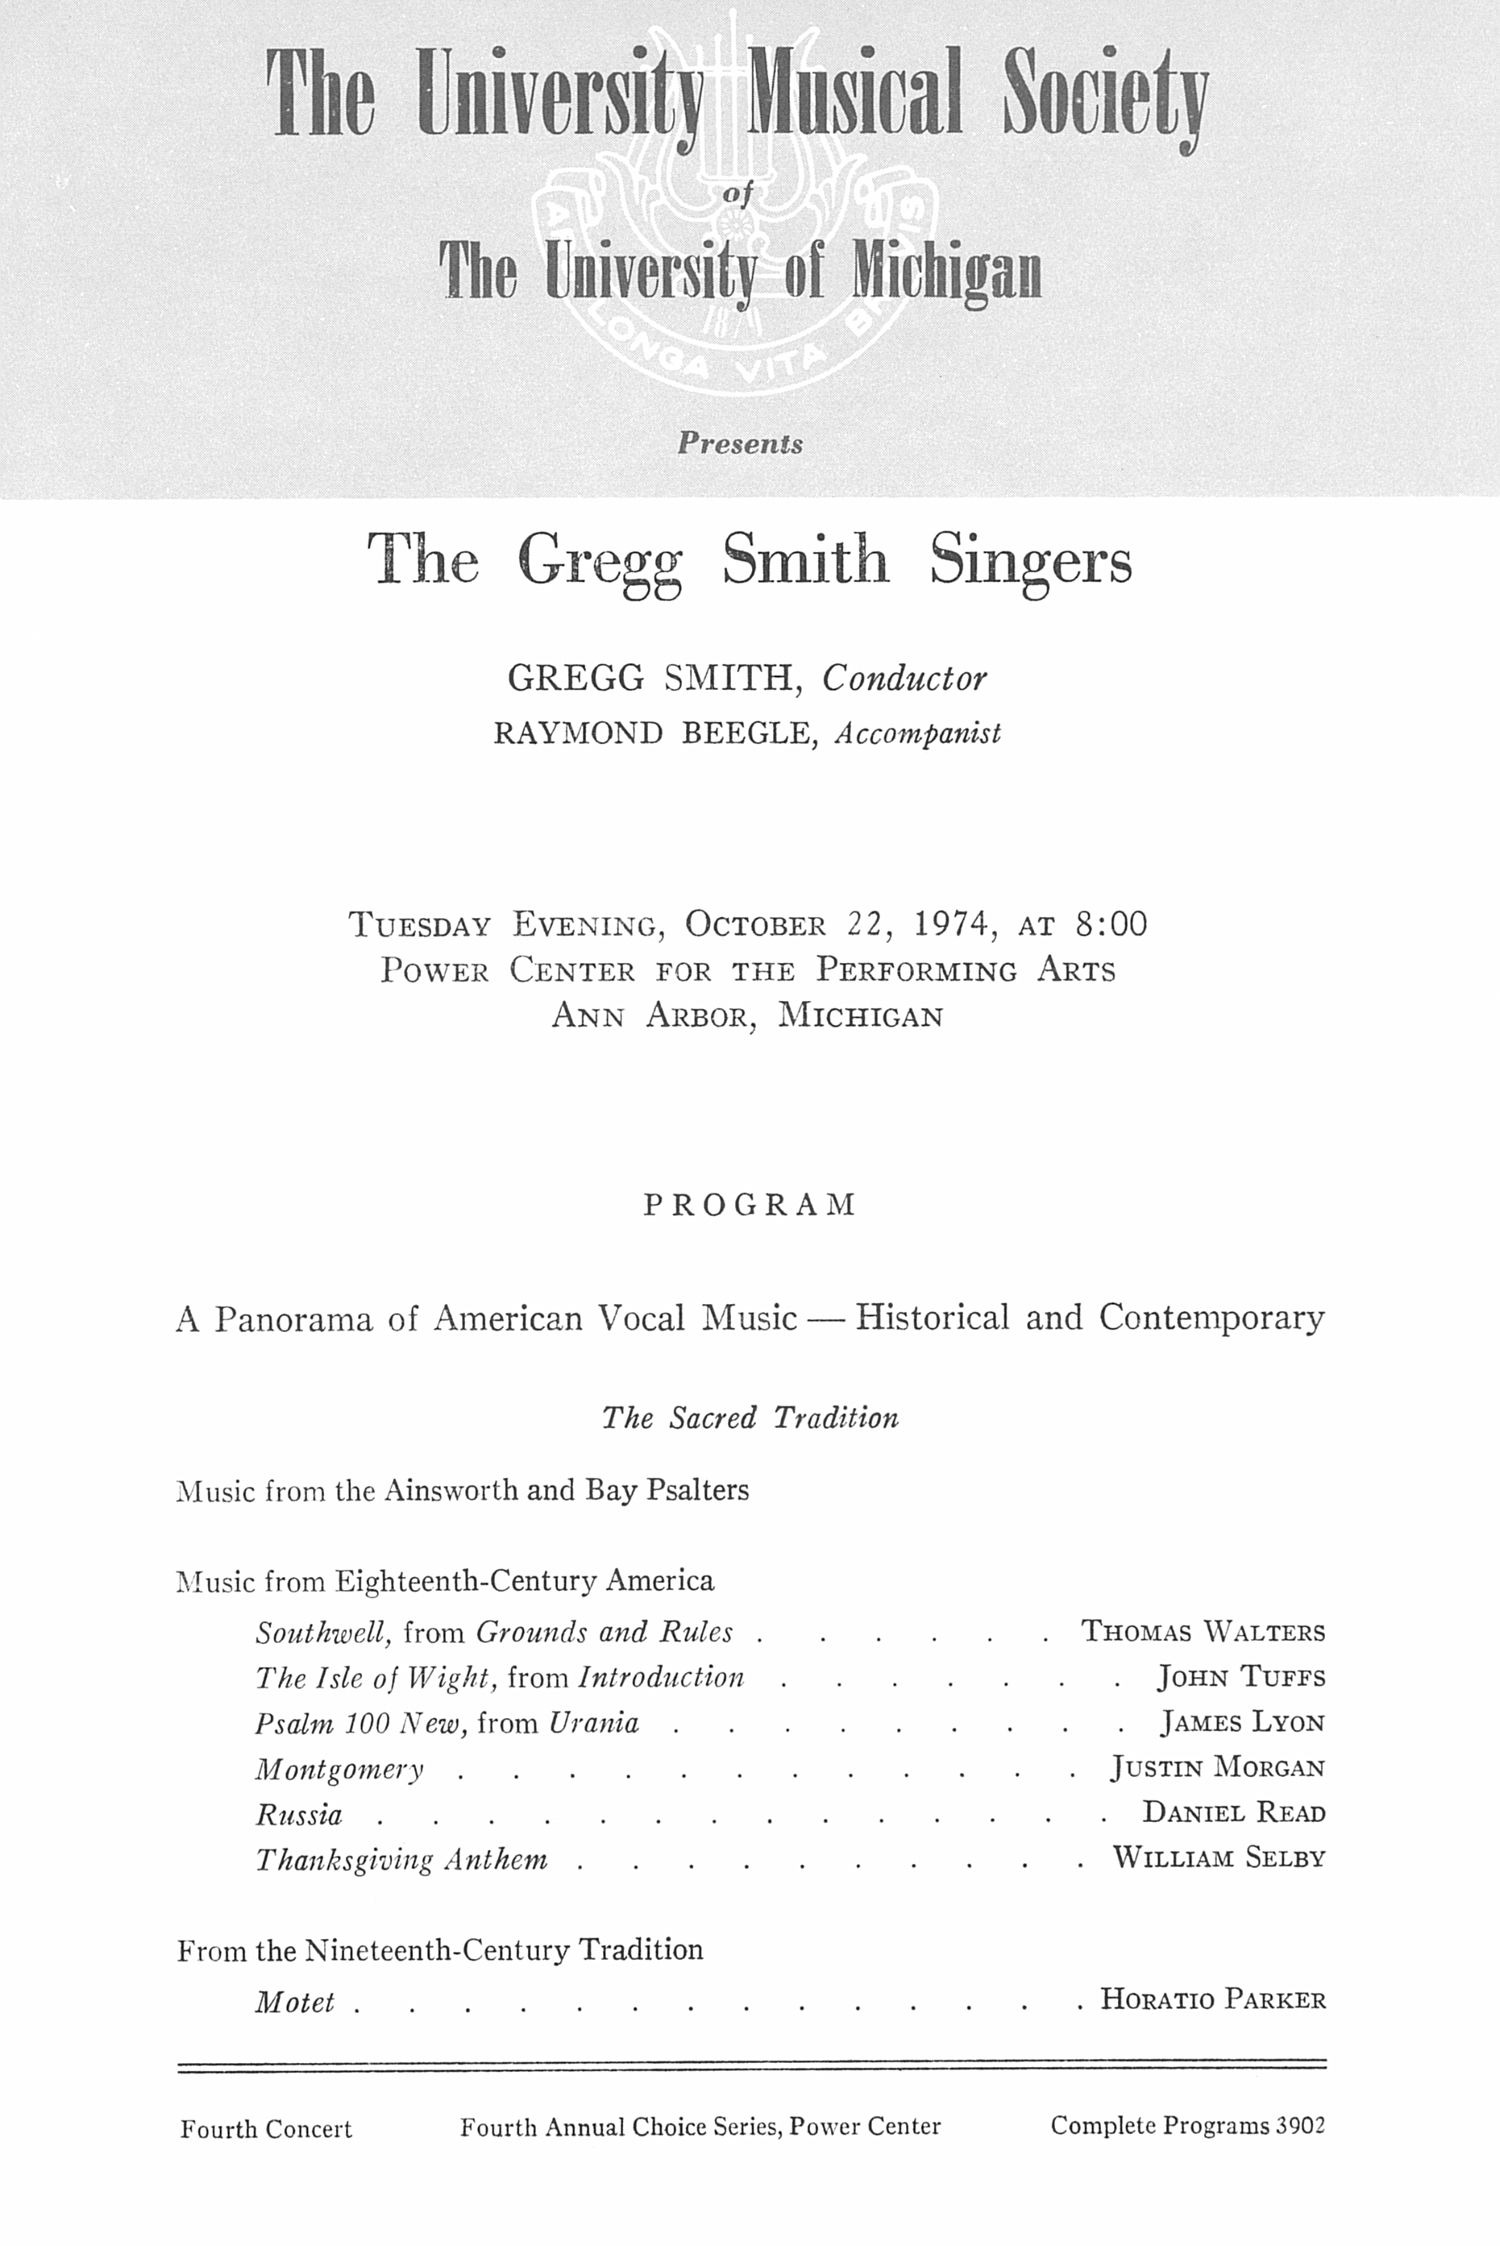 UMS Concert Program, October 22, 1974: The Gregg Smith Singers --  image